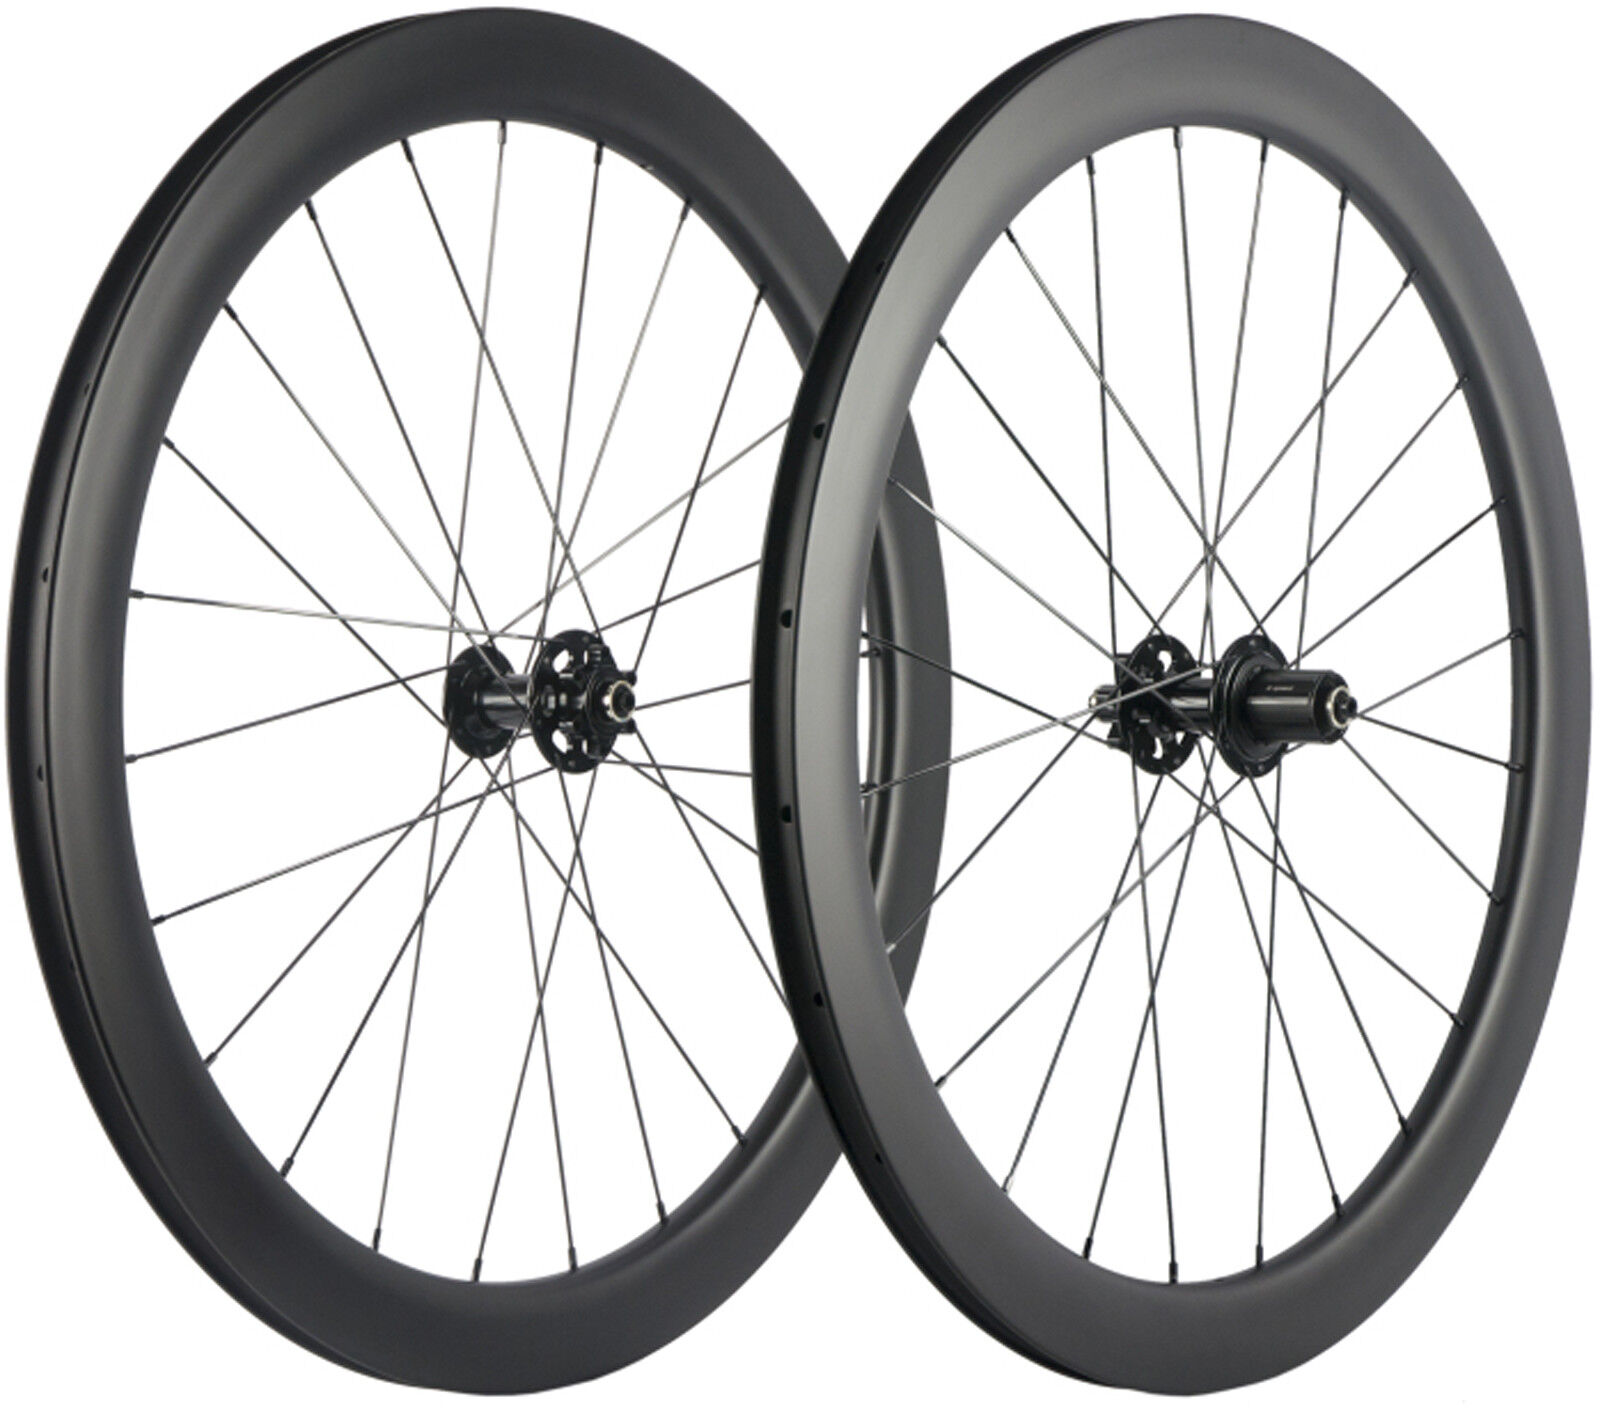 25mm Disc Brake Wheelset 38 50 60 88mm  Clincher Carbon Cyclocross Wheels 700C  team promotions